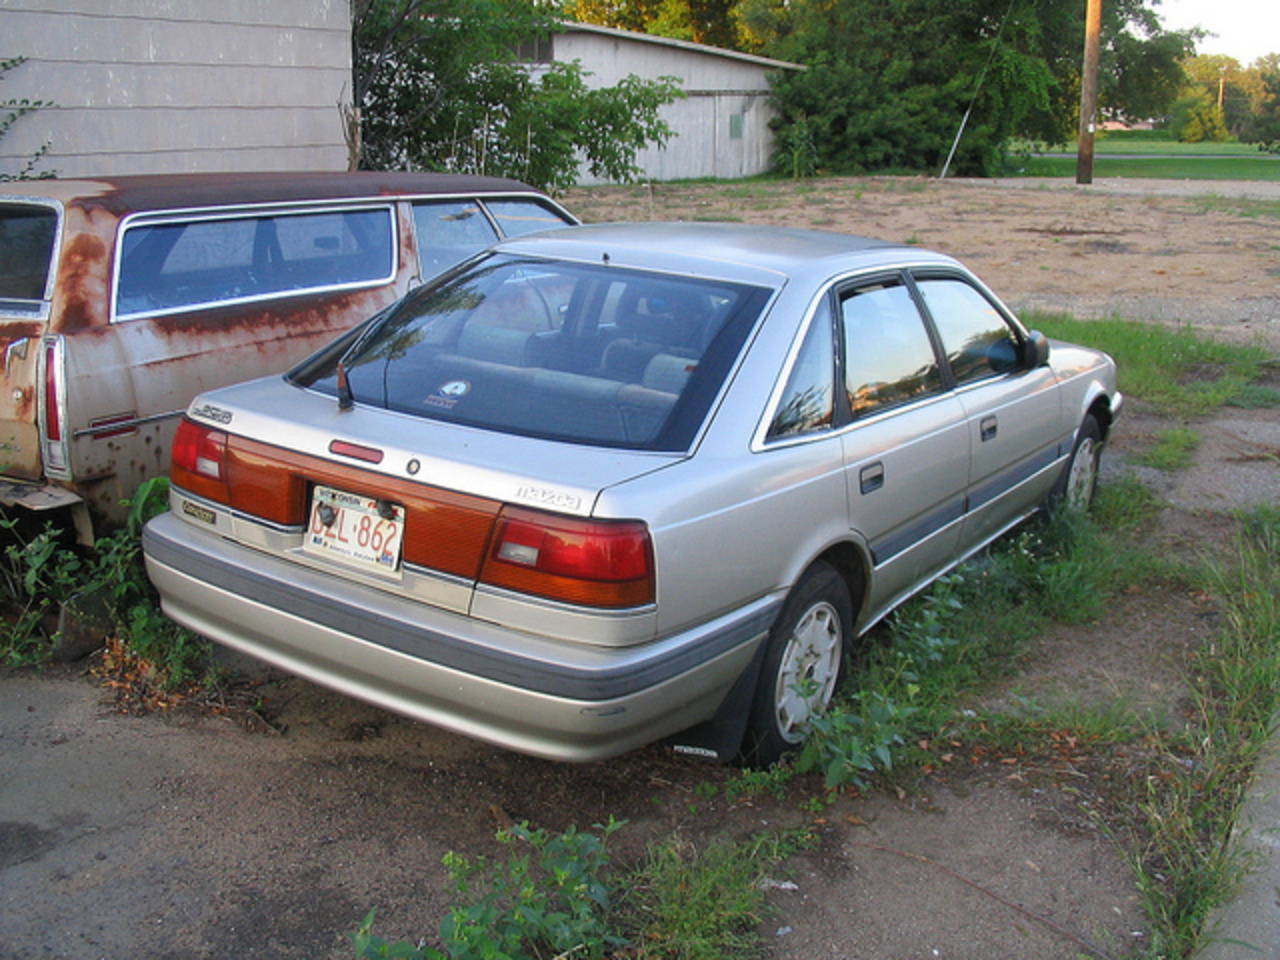 1991 Mazda 626 Touring Sedan | Flickr - Photo Sharing!